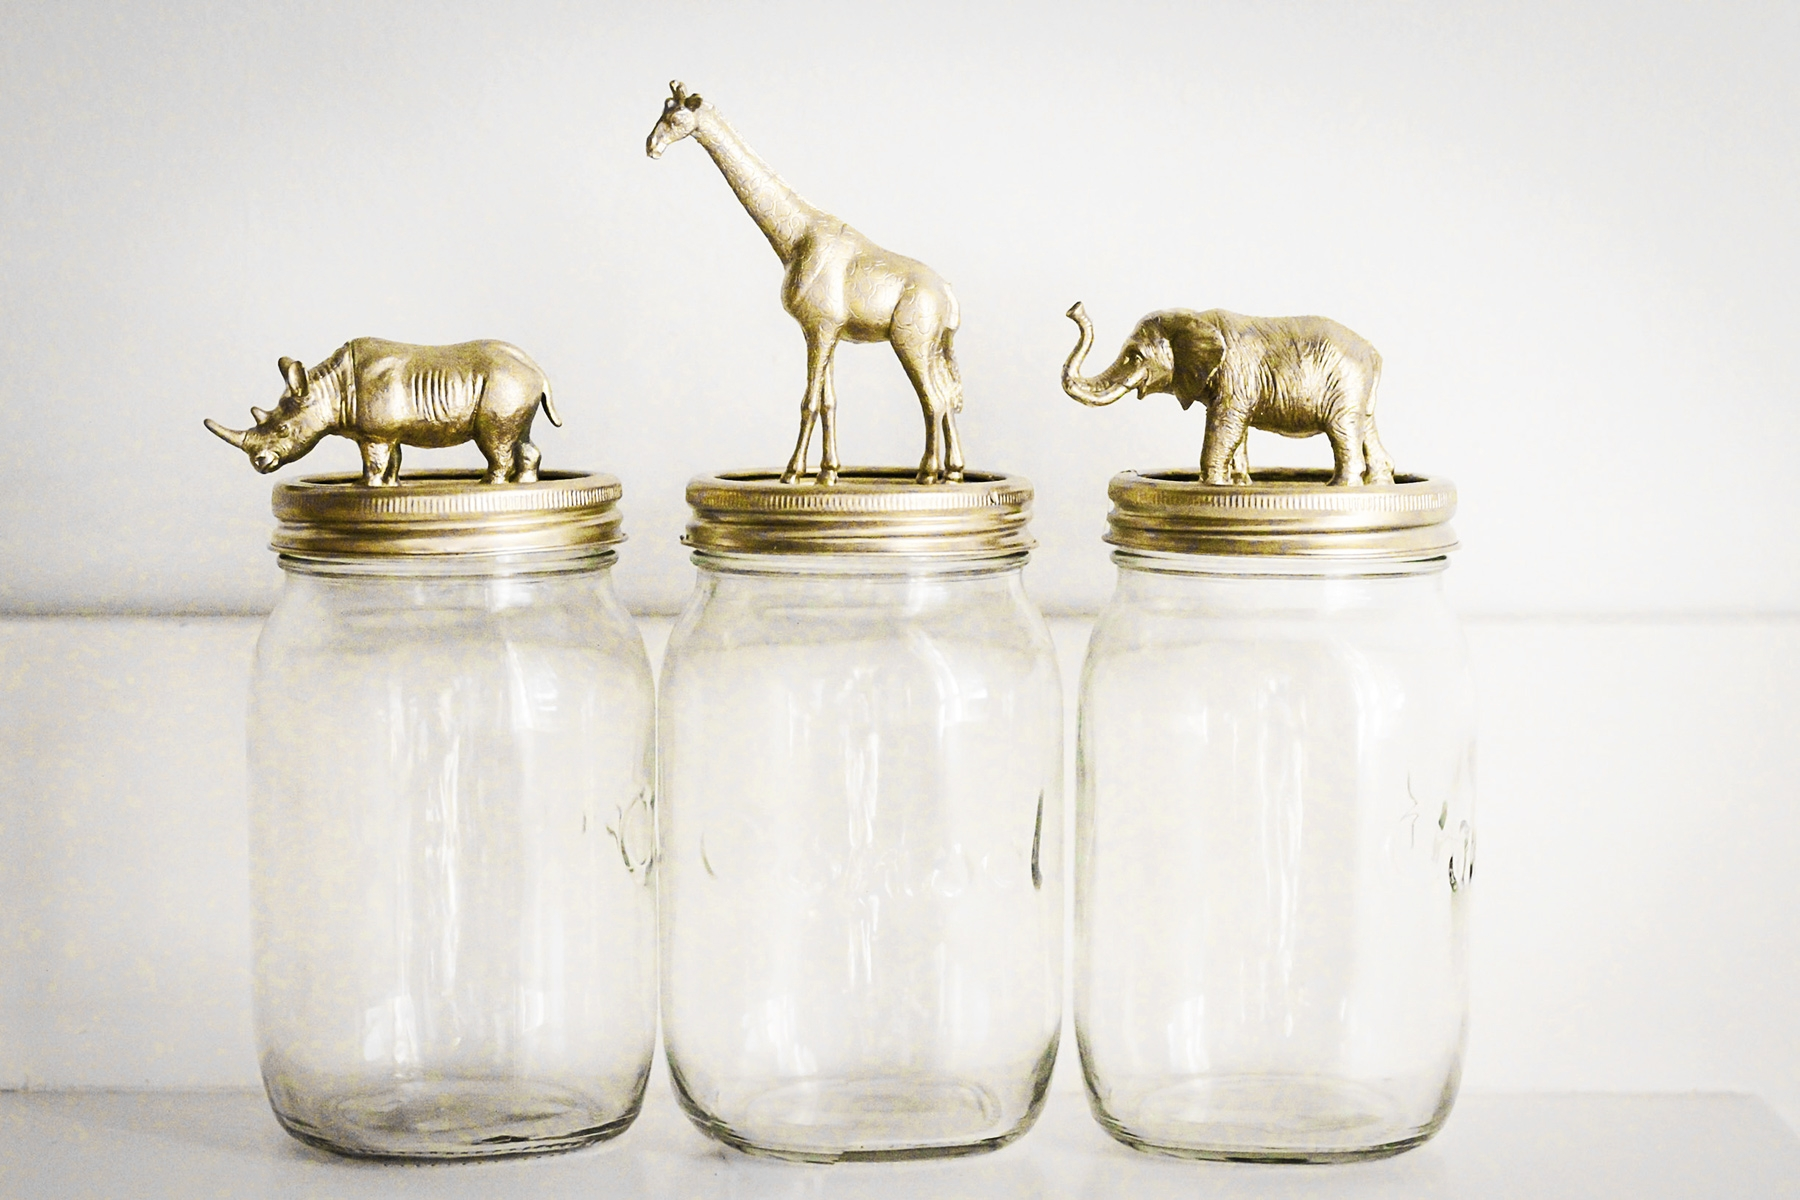 SMALL STORAGE - Mason Jars + Plastic Toy Animals + Hot Glue Gun + Spray Paint